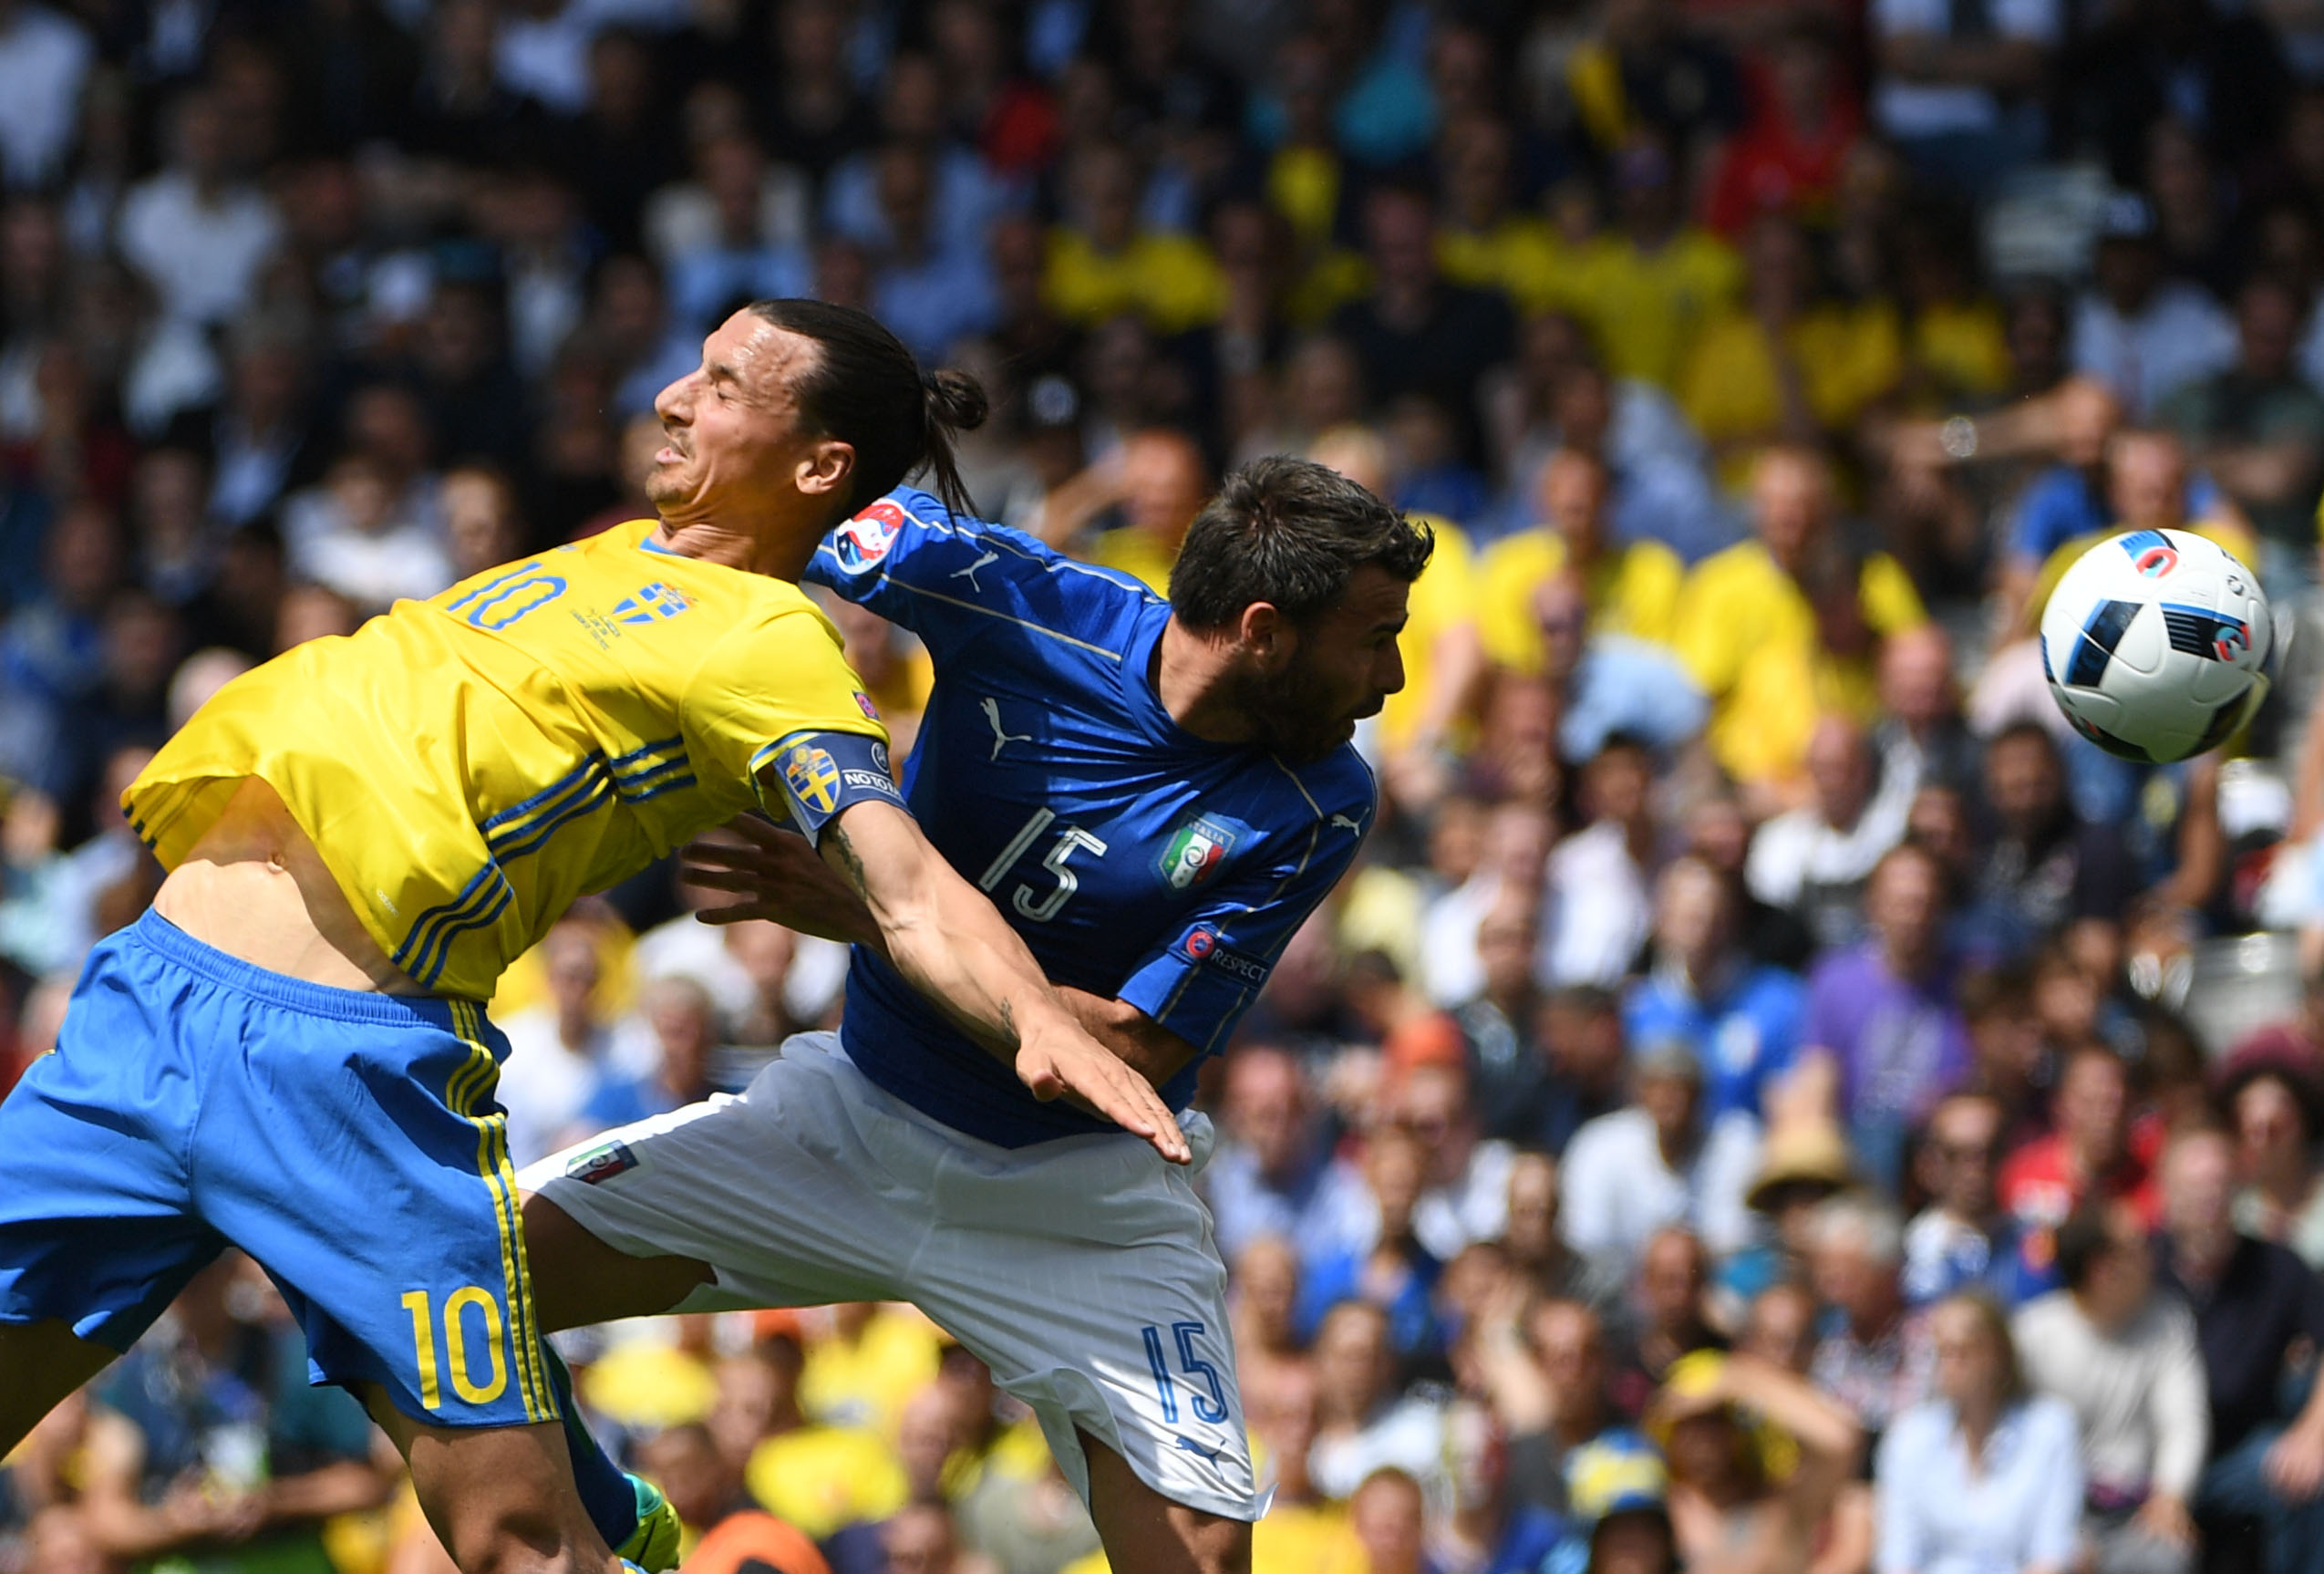 Sweden's forward Zlatan Ibrahimovic (L) vies with Italy's defender Andrea Barzagli during the Euro 2016 group E football match between Italy and Sweden at the Stadium Municipal in Toulouse on June 17, 2016. / AFP / PASCAL GUYOT (Photo credit should read PASCAL GUYOT/AFP/Getty Images)